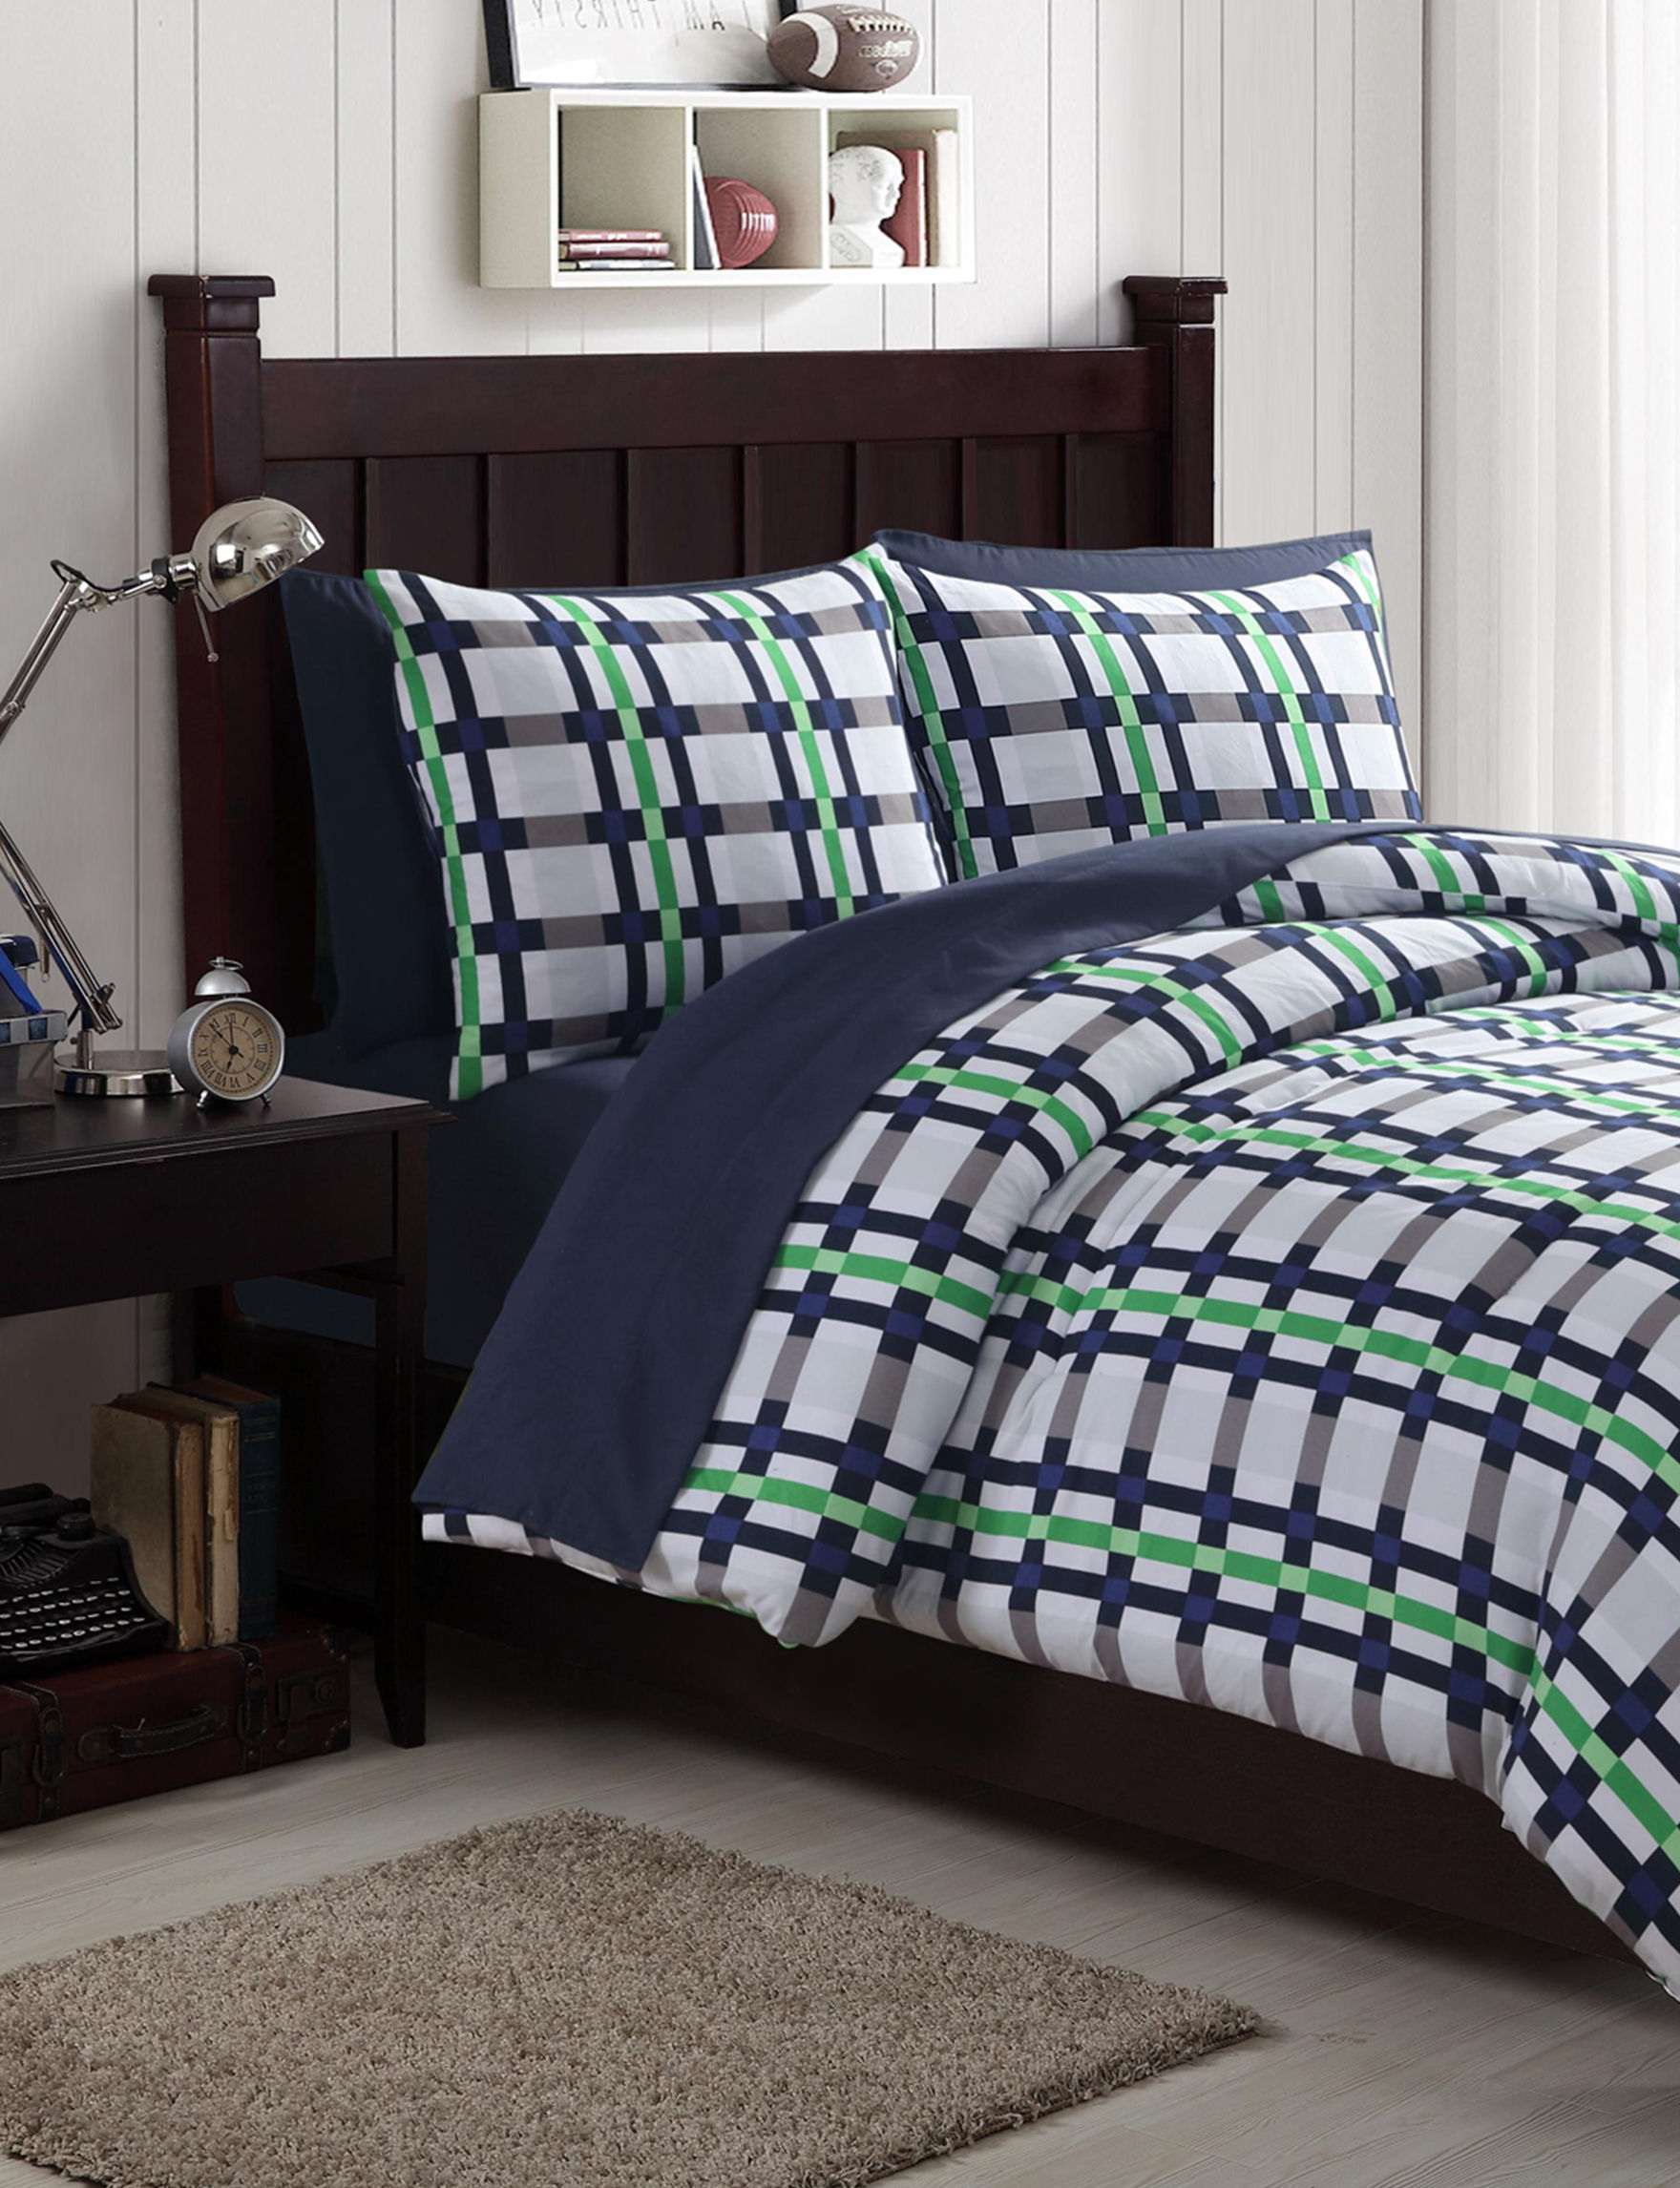 VCNY Home Blue / Green Comforters & Comforter Sets